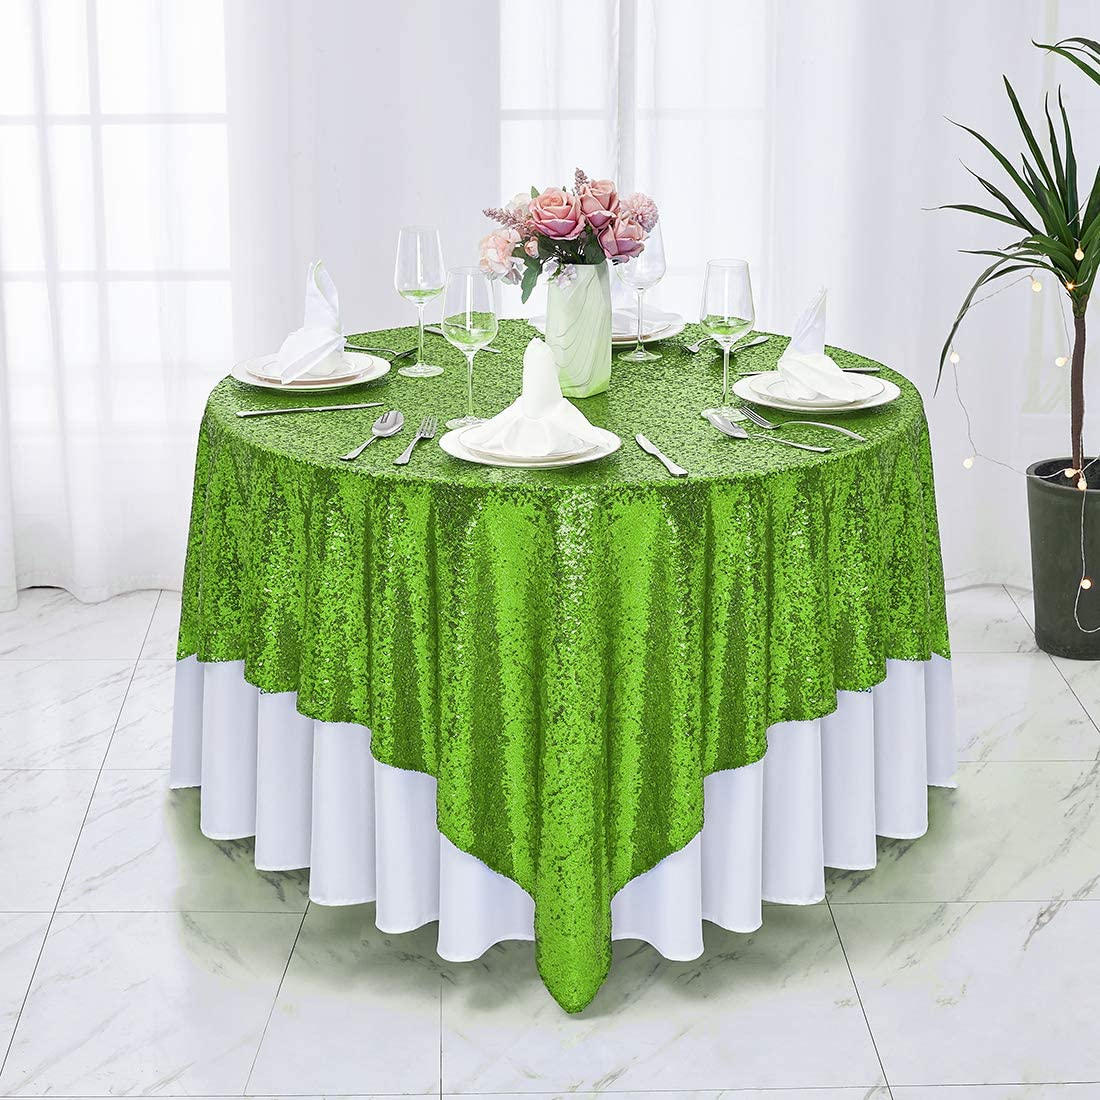 Hahuho Apple Green Sequin Tablecloth 90x90 inch Square, Glitter Tablecloth for Bridal Shower Decorations, Birthday, Wedding, Dessert, Banquet(90x90 Inch, Apple Green)